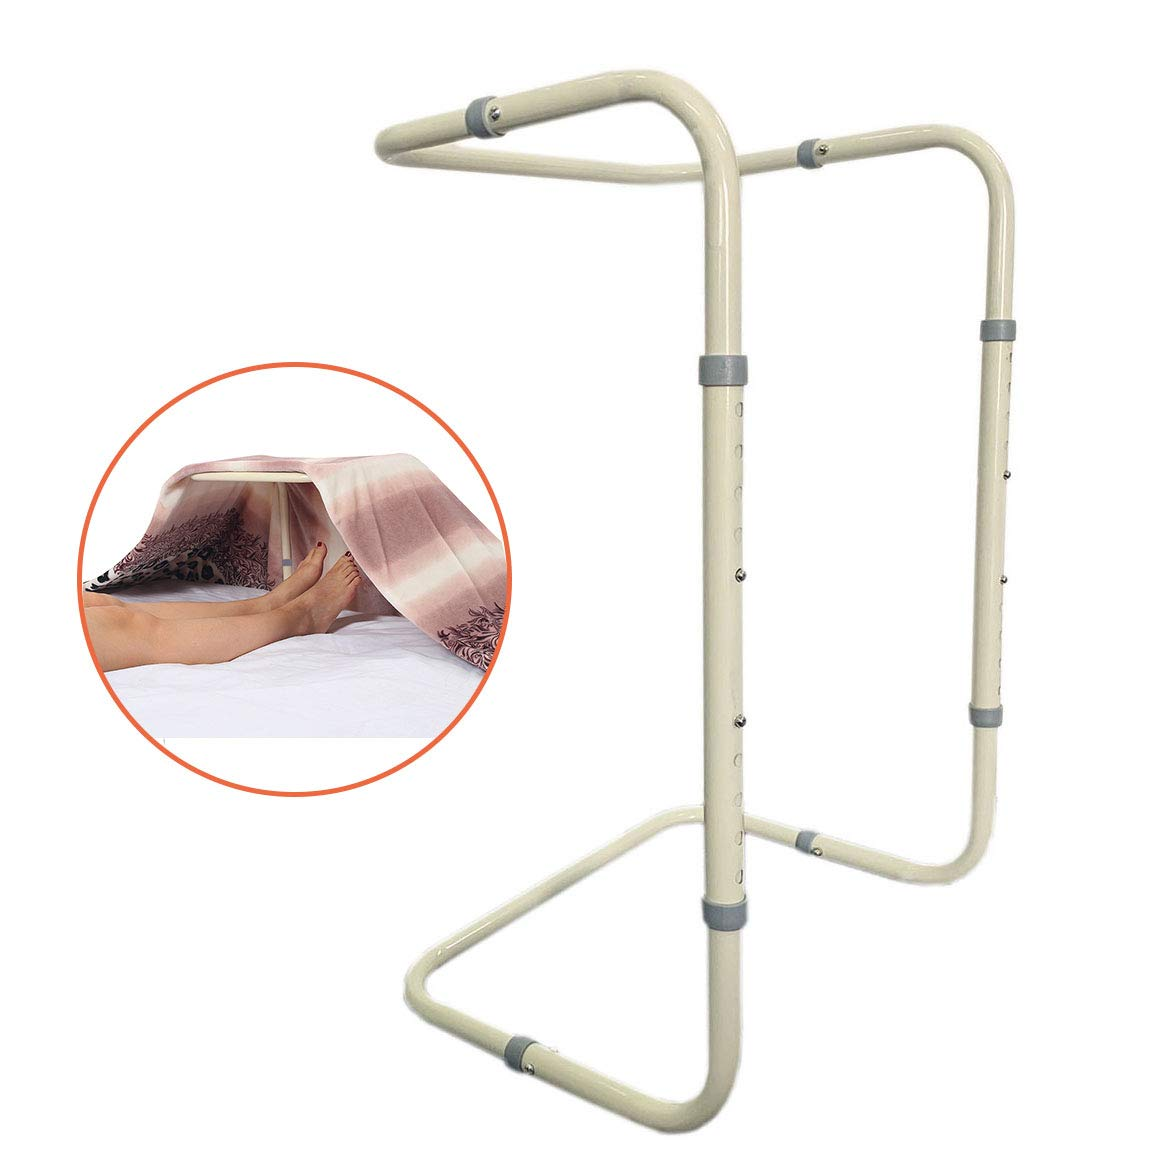 Blanket Support Lifter Adjustable Bed Cradle for Foot Sheet Riser Lift Bar of Tent Blankets Holder Rail Medical Hospital Beds Accessories Leg Knee Feet Ankle Post Surgery Recovery Arthritis Assist